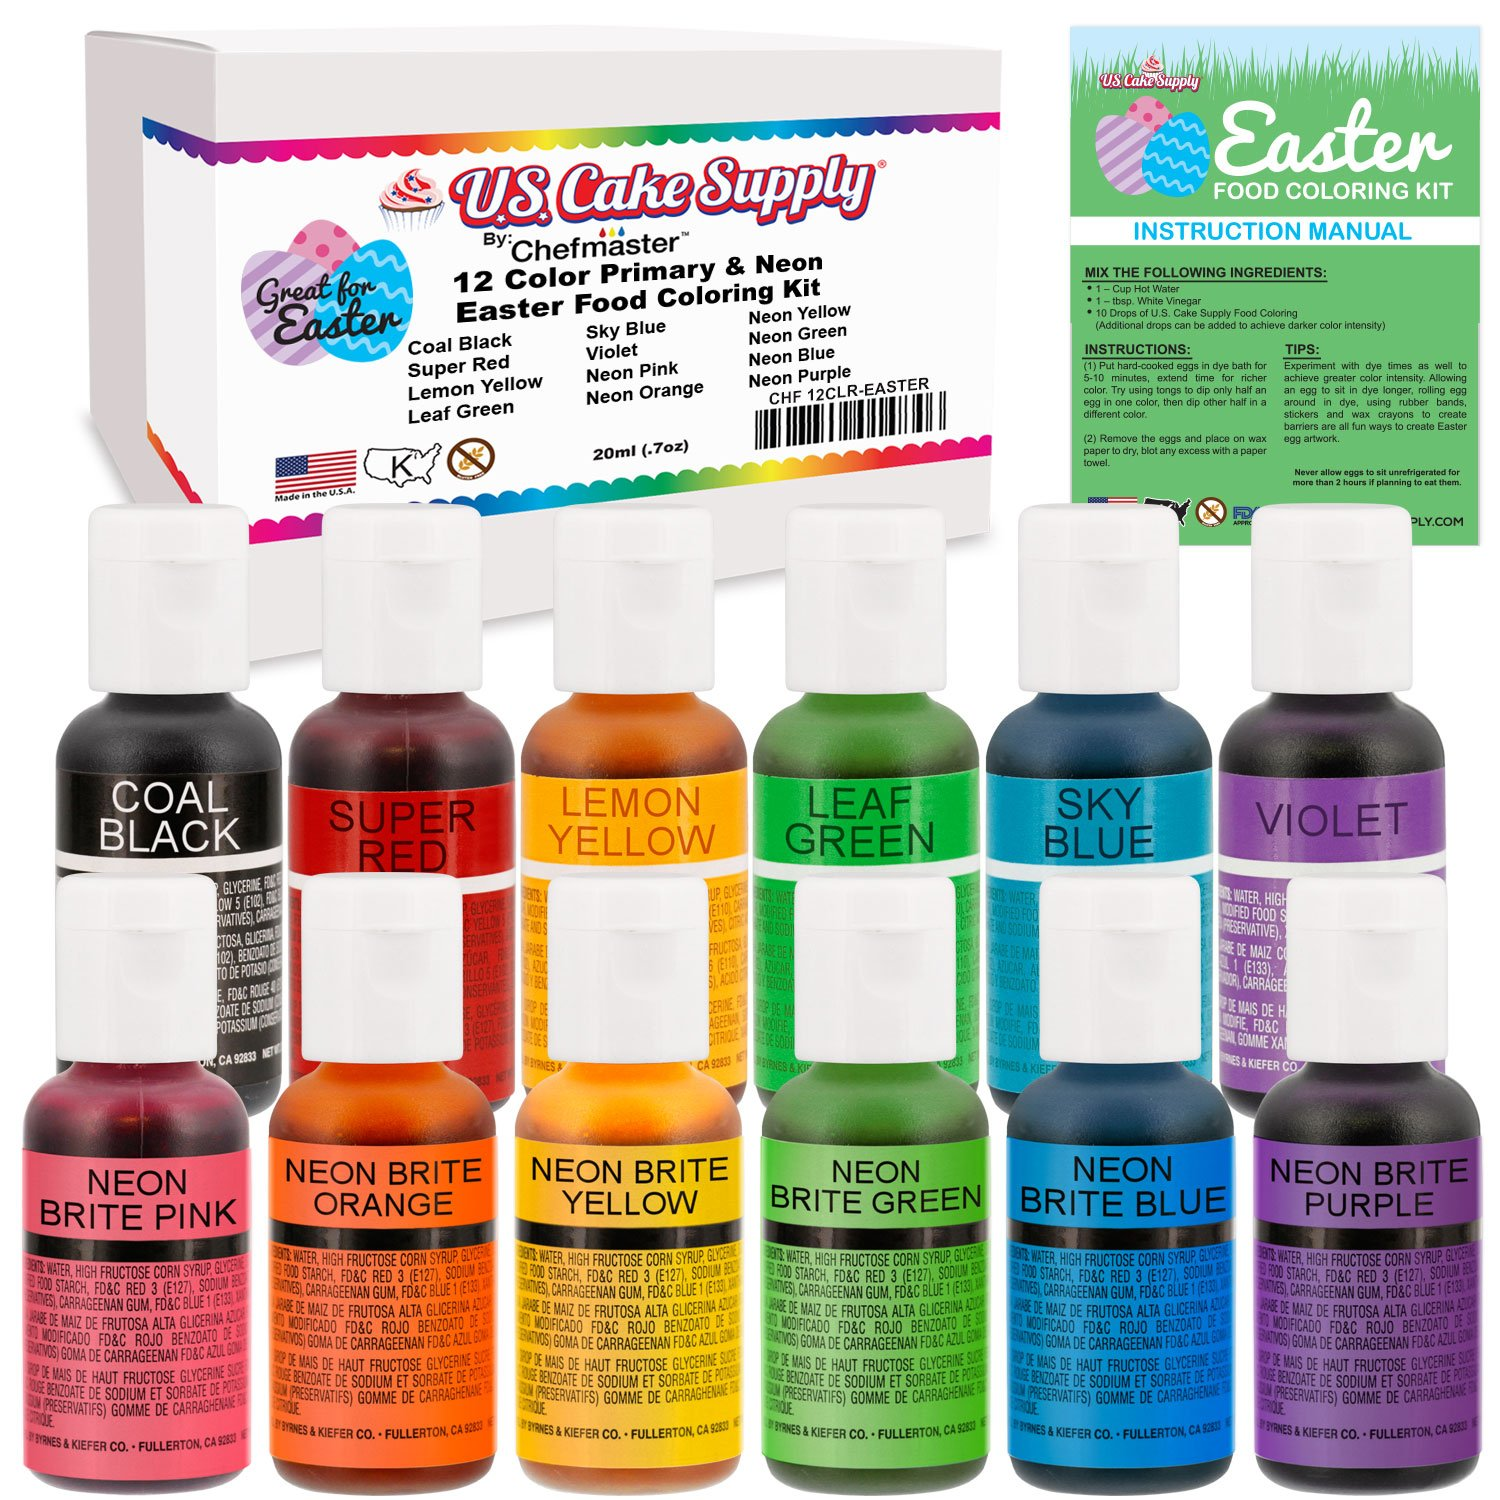 12 Color Cake Food Coloring Liqua-Gel Easter Egg Decorating Baking Set - U.S. Cake Supply .75 fl. Oz. (20ml) Bottles Primary & Neon Colors - Safely Made in the USA product